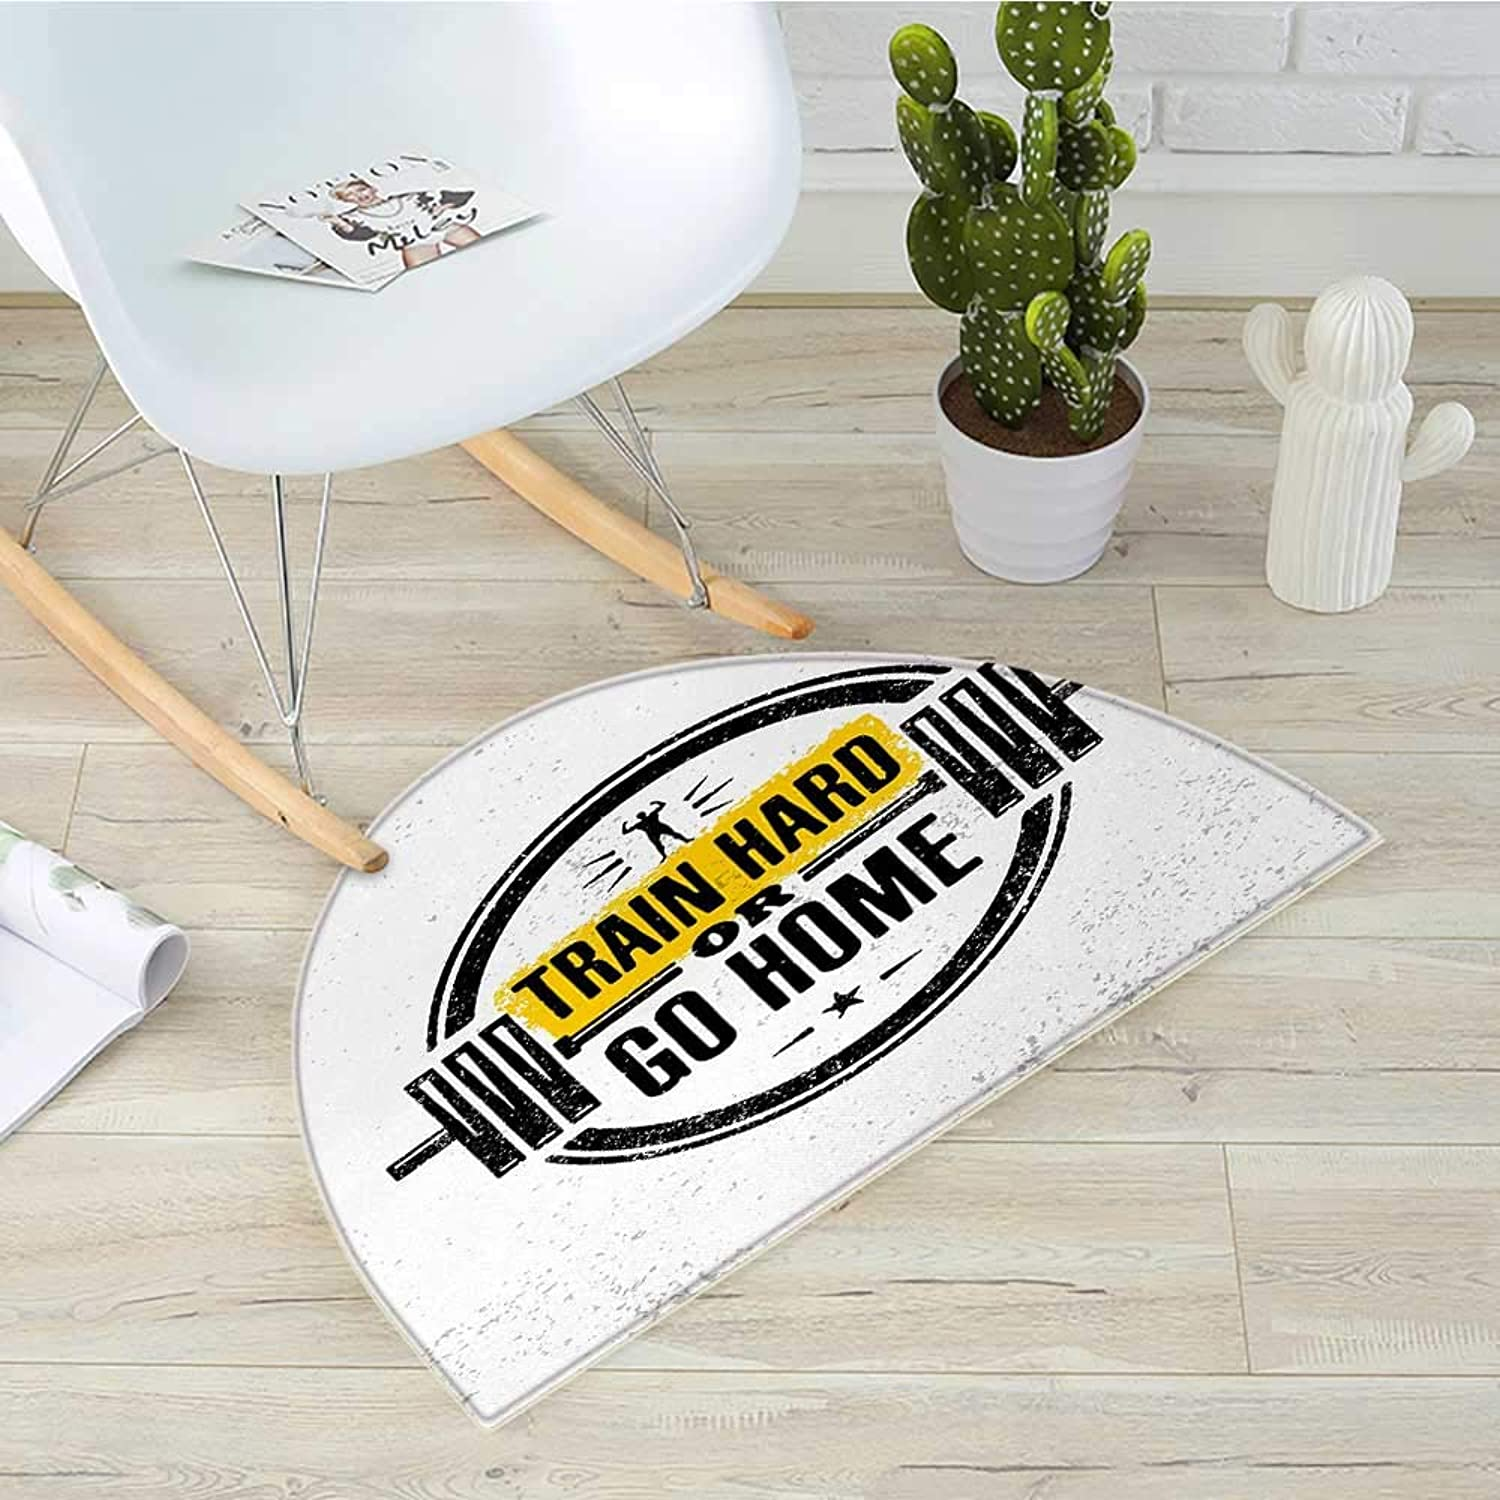 Fitness Half Round Door mats Train Hard or Go Home Stamp Like Design Strong Sportsman Barbell Circle Bathroom Mat H 39.3  xD 59  Black White Yellow